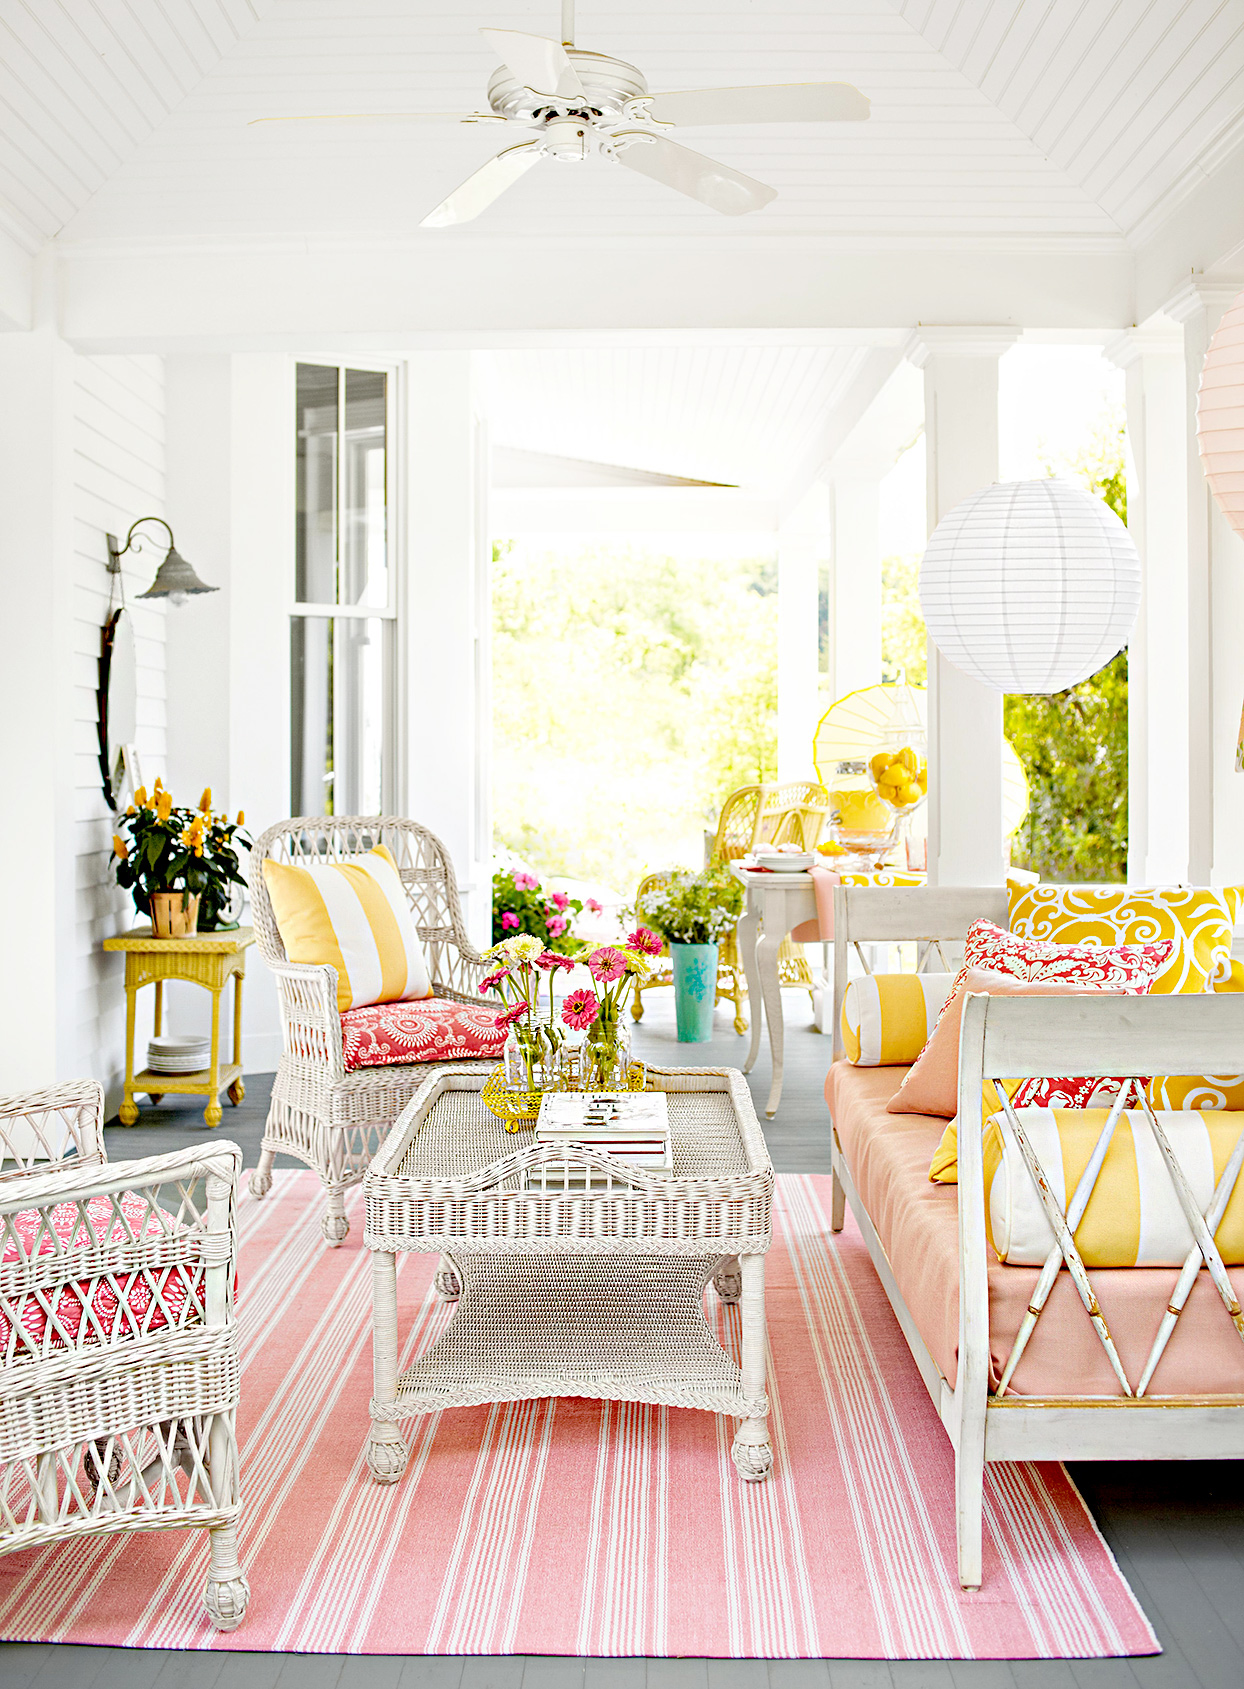 Porch with pink and white theme, wicker furniture